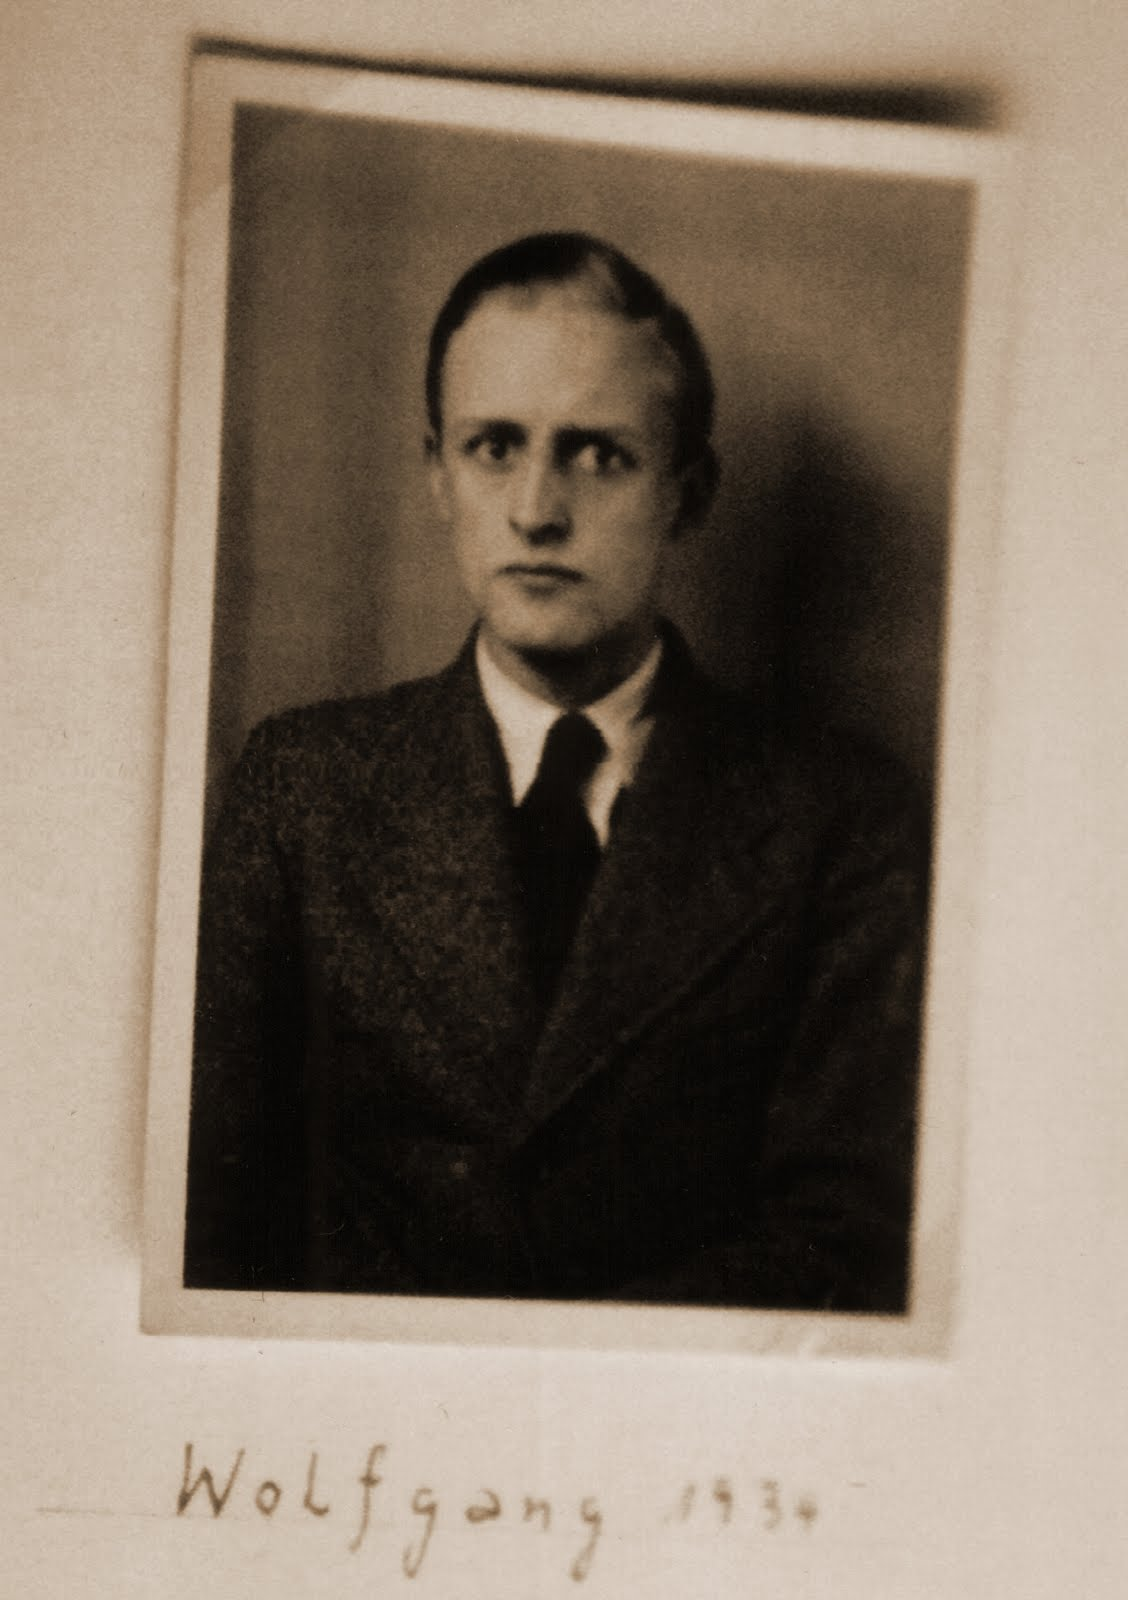 Portrait of Wolfgang Wolff, 1934